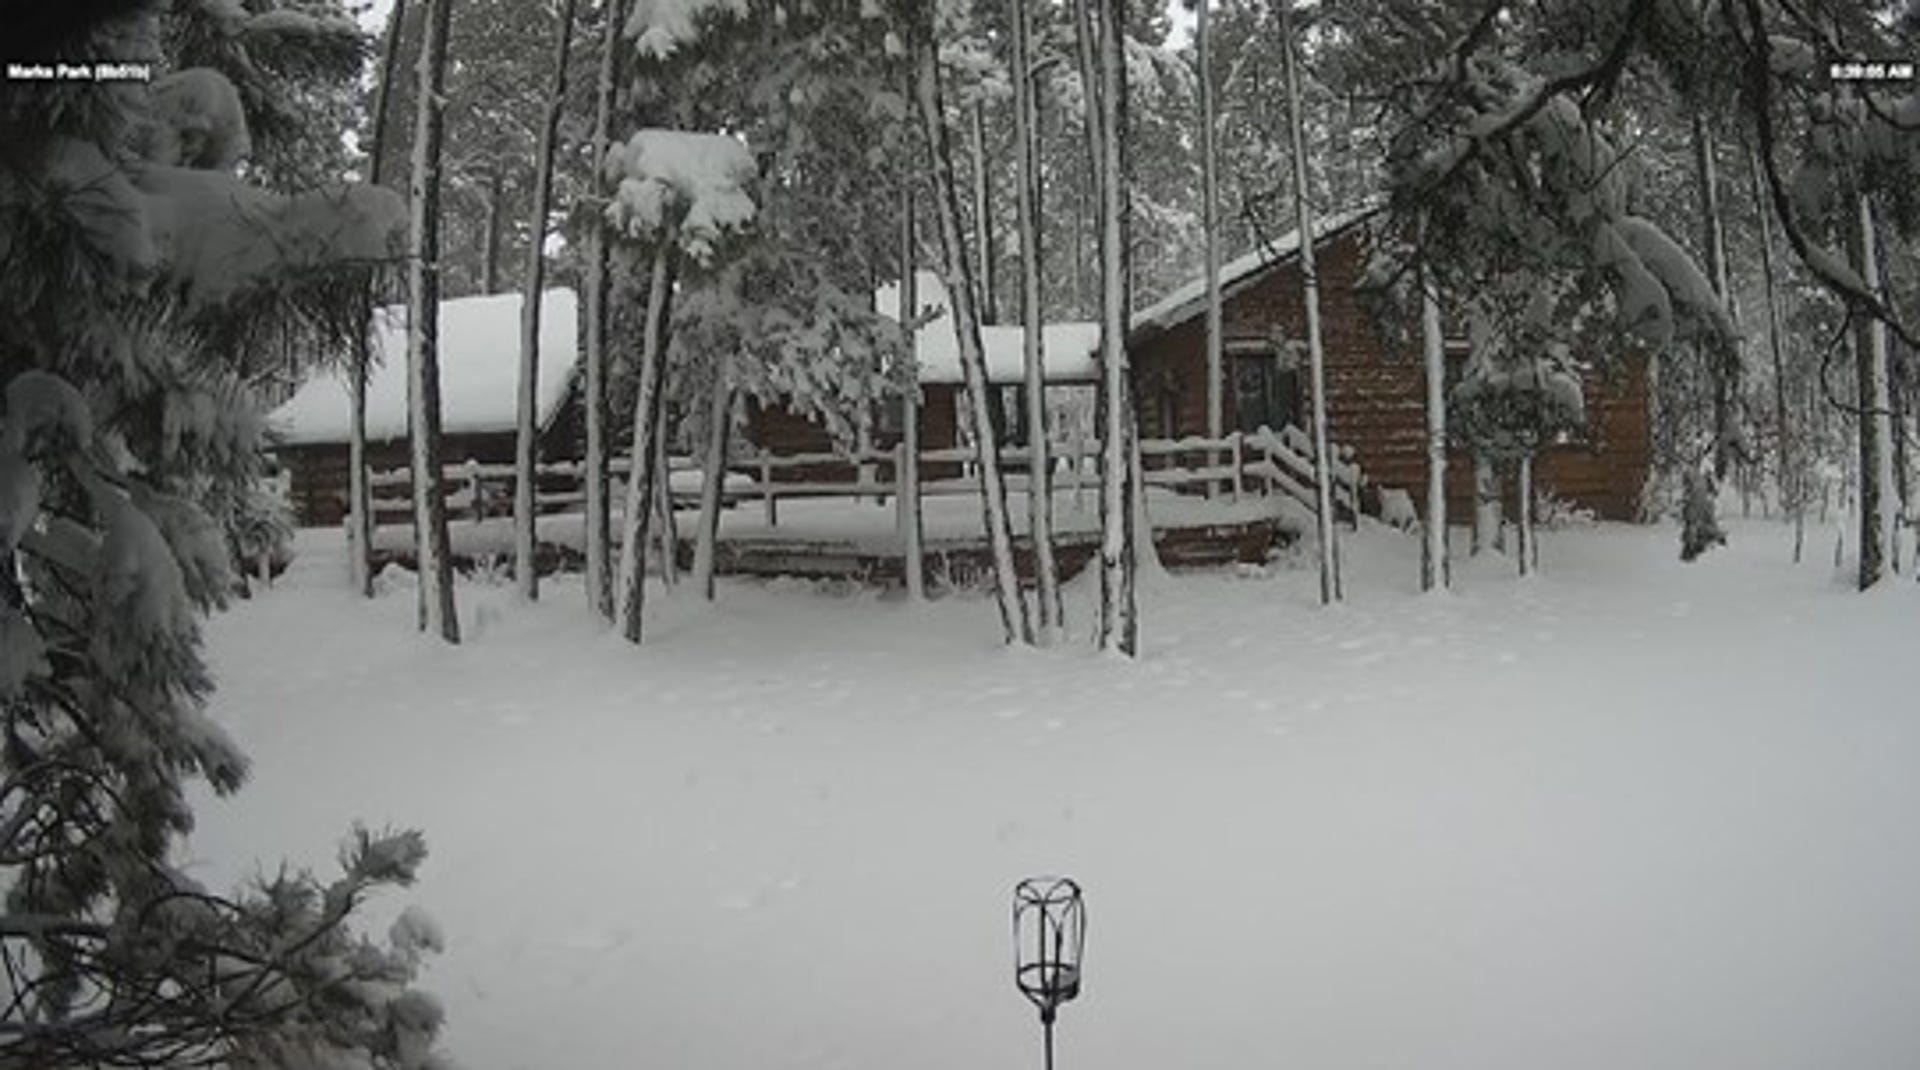 Flagstaff shatters all-time daily snowfall record with more than 31 inches